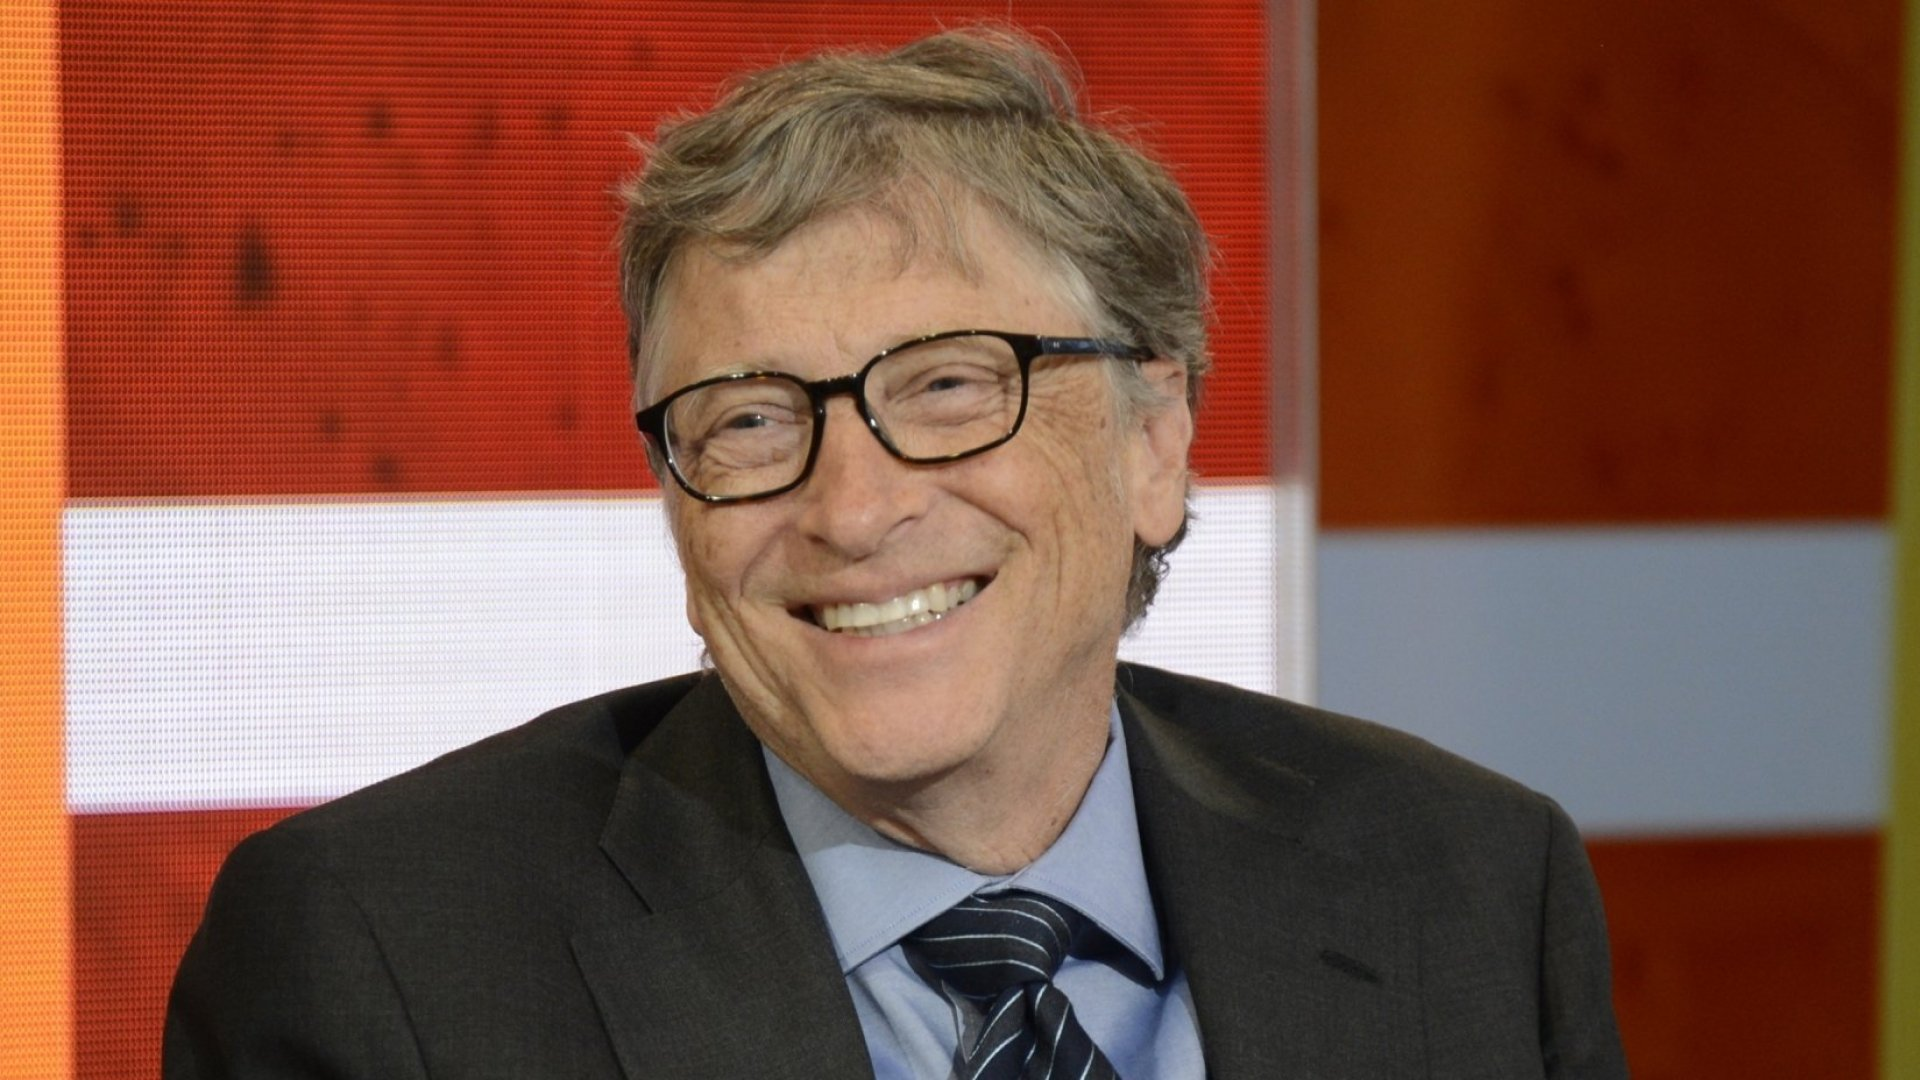 8 Books Bill Gates Wants You to Read This Summer